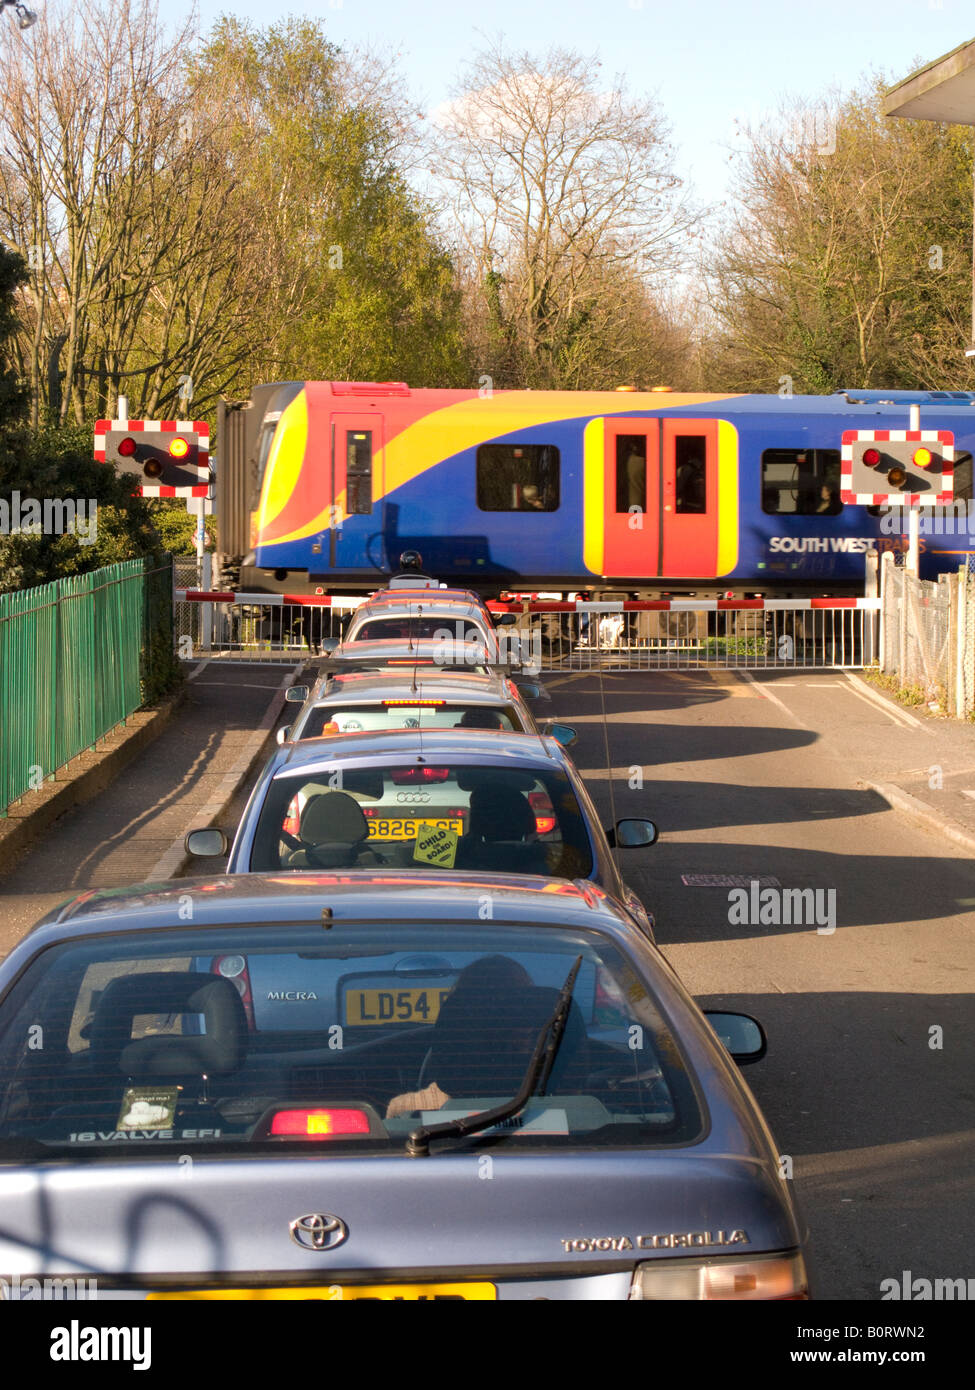 Cars wait at a railway level crossing barrier as train passes through the crossing. - Stock Image